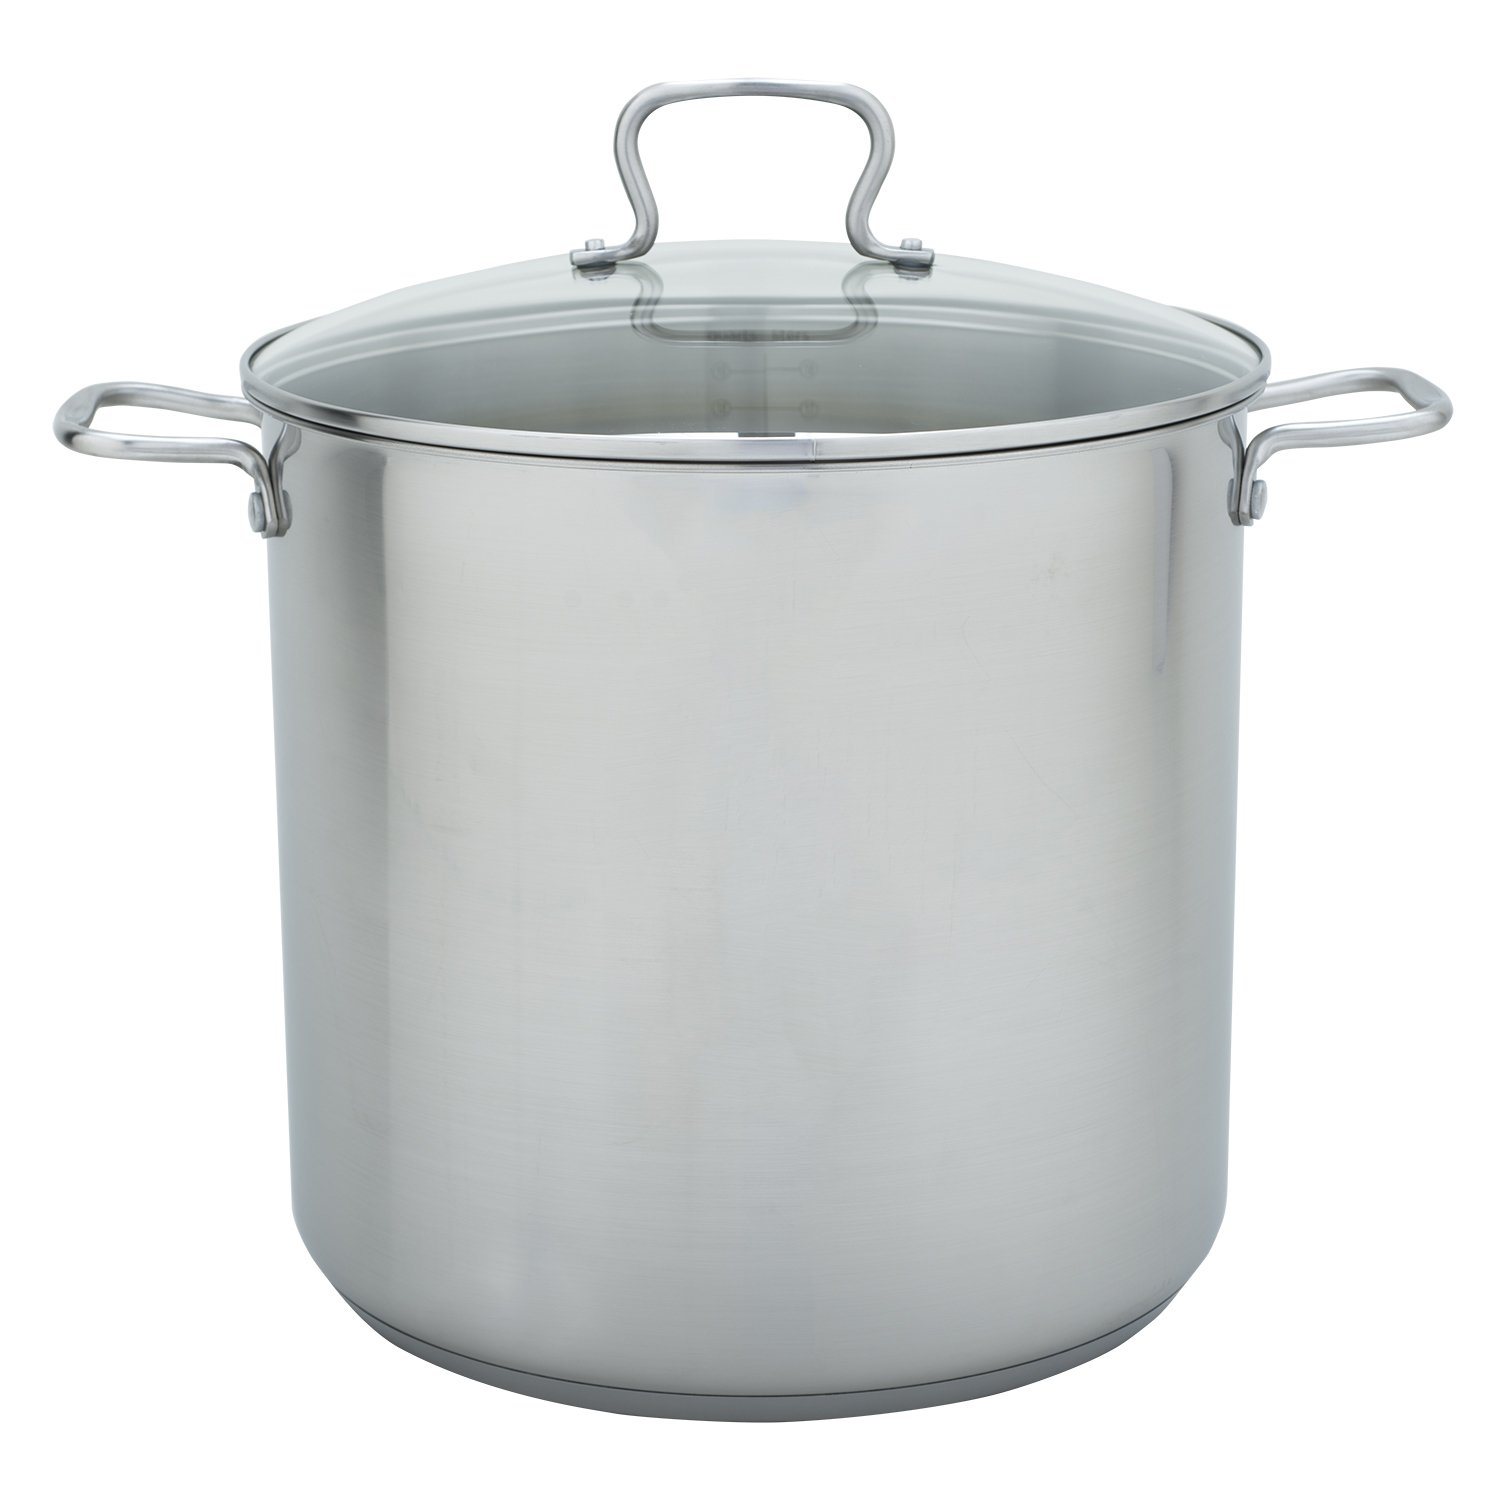 Range Kleen CW7104 Stainless Steel Stock Pot with Lid, 20-Quart by Range Kleen